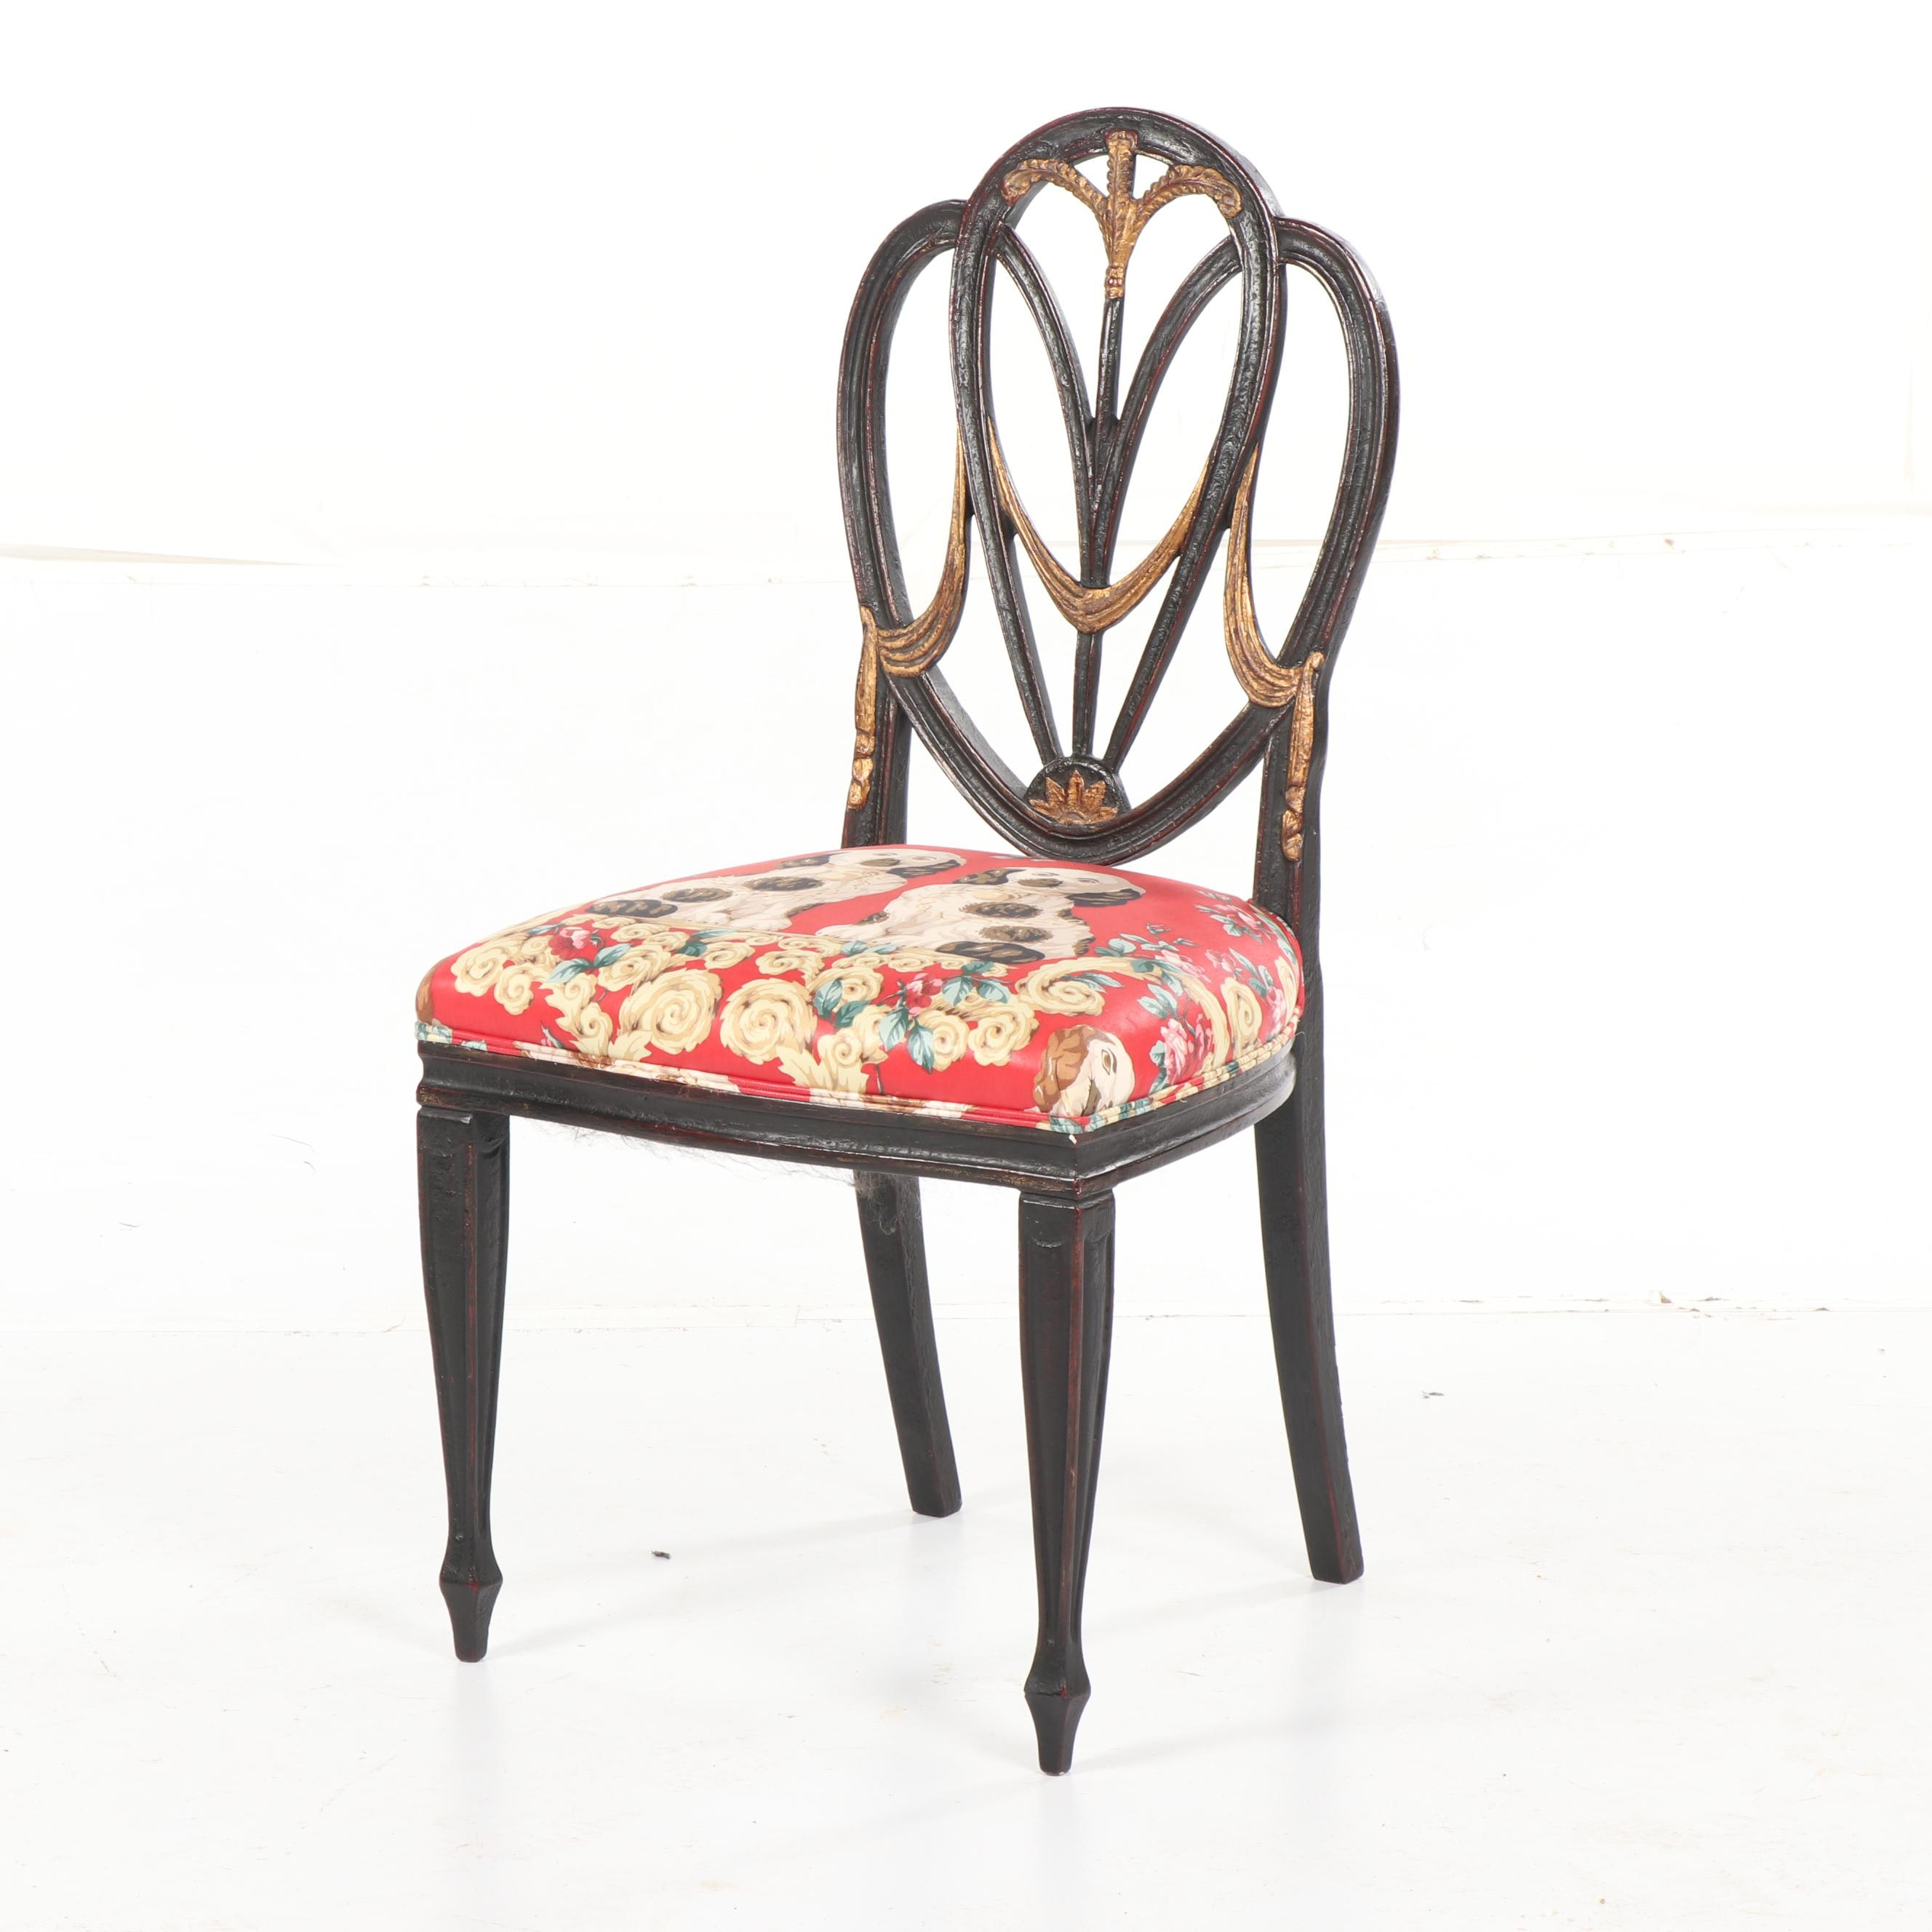 Federal Style Painted Wooden Chair with Staffordshire Dog Upholstery, 20th Cent.